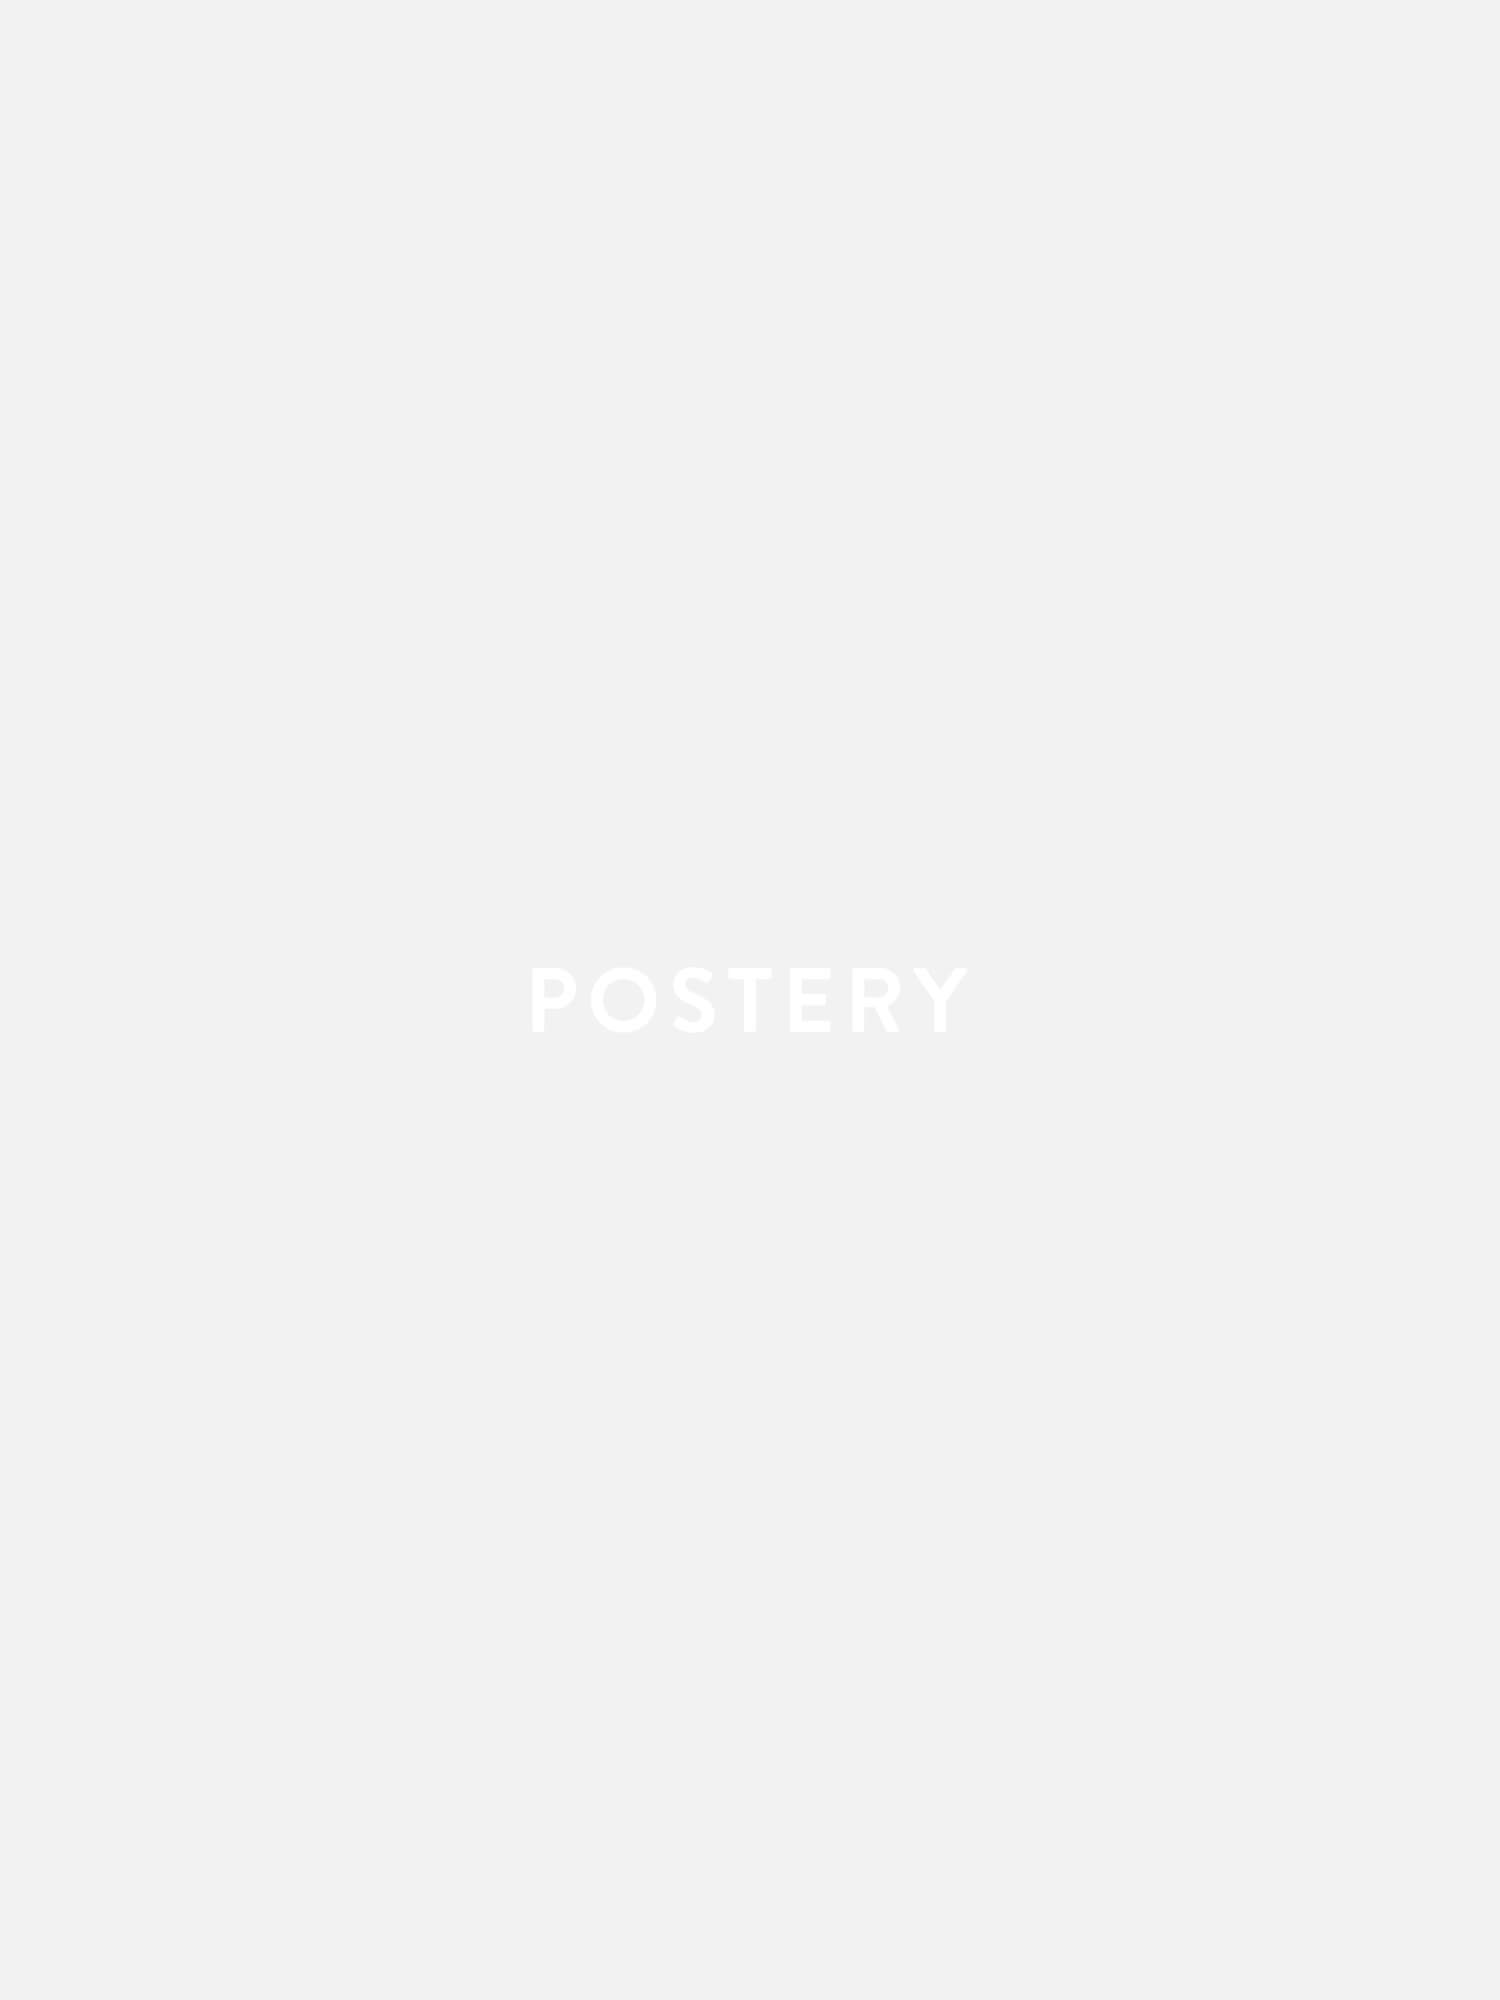 Balloons BW Poster